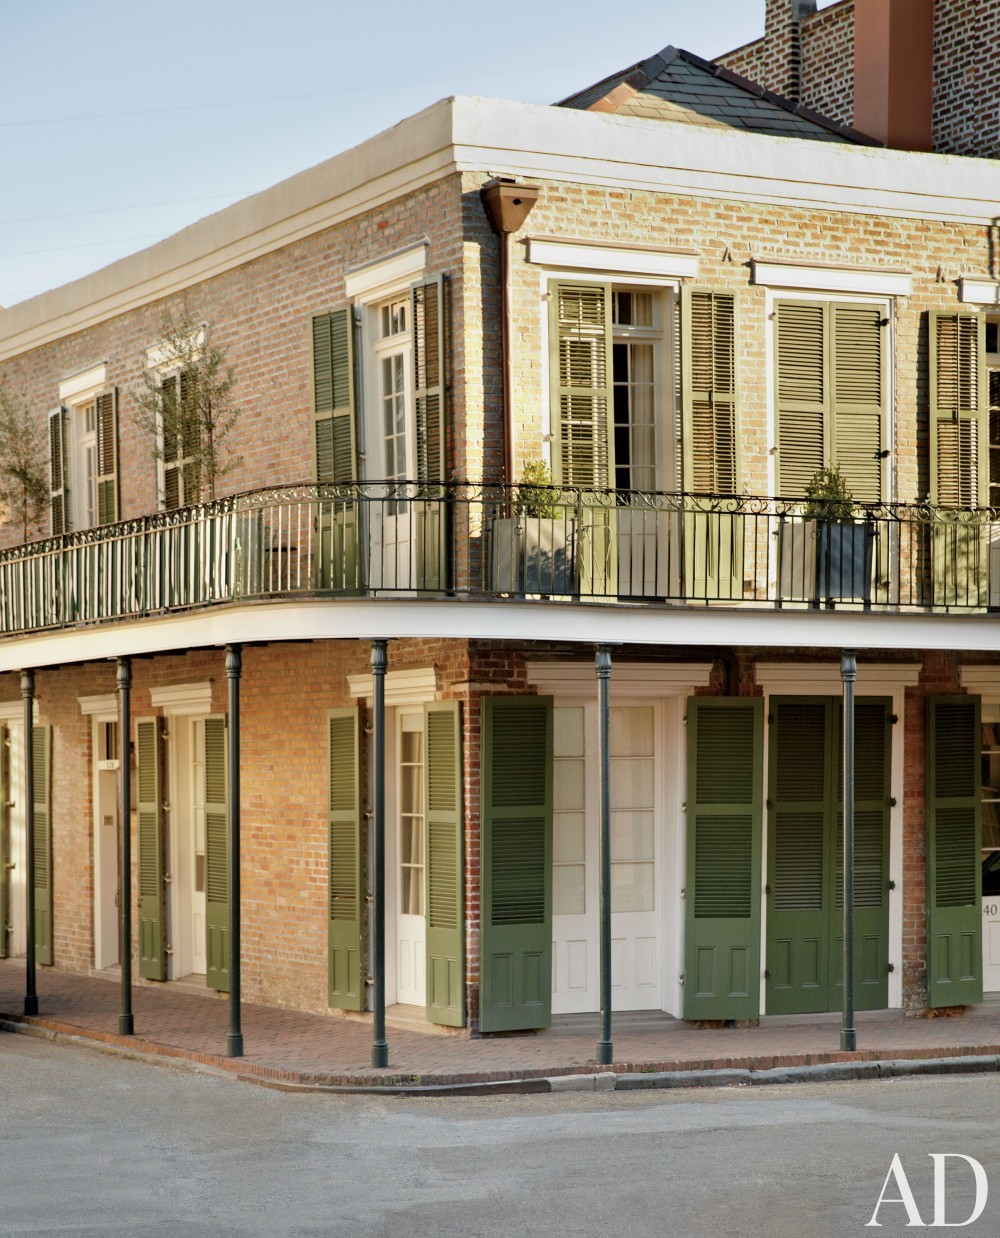 Traditional Exterior by Nicky Haslam in New Orleans, LA